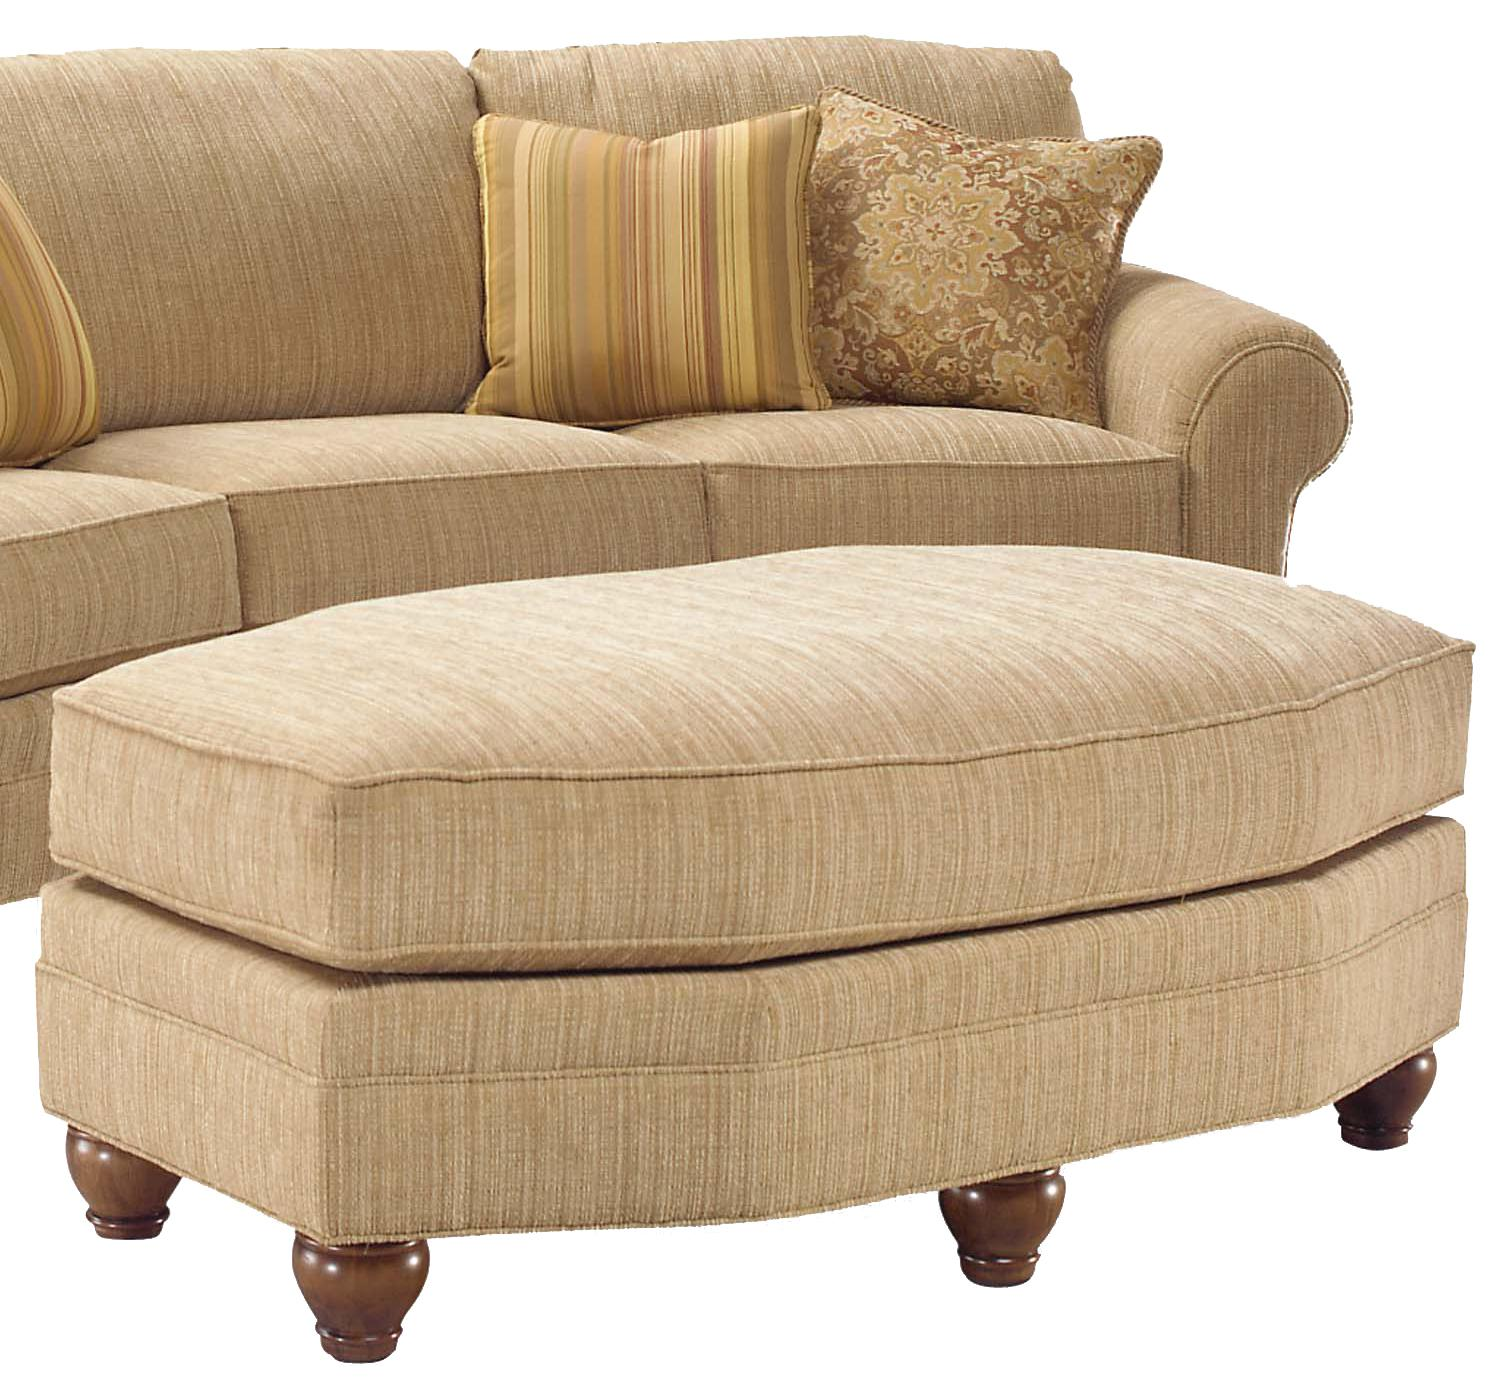 3768 Oval Ottoman by Fairfield at Miller Home